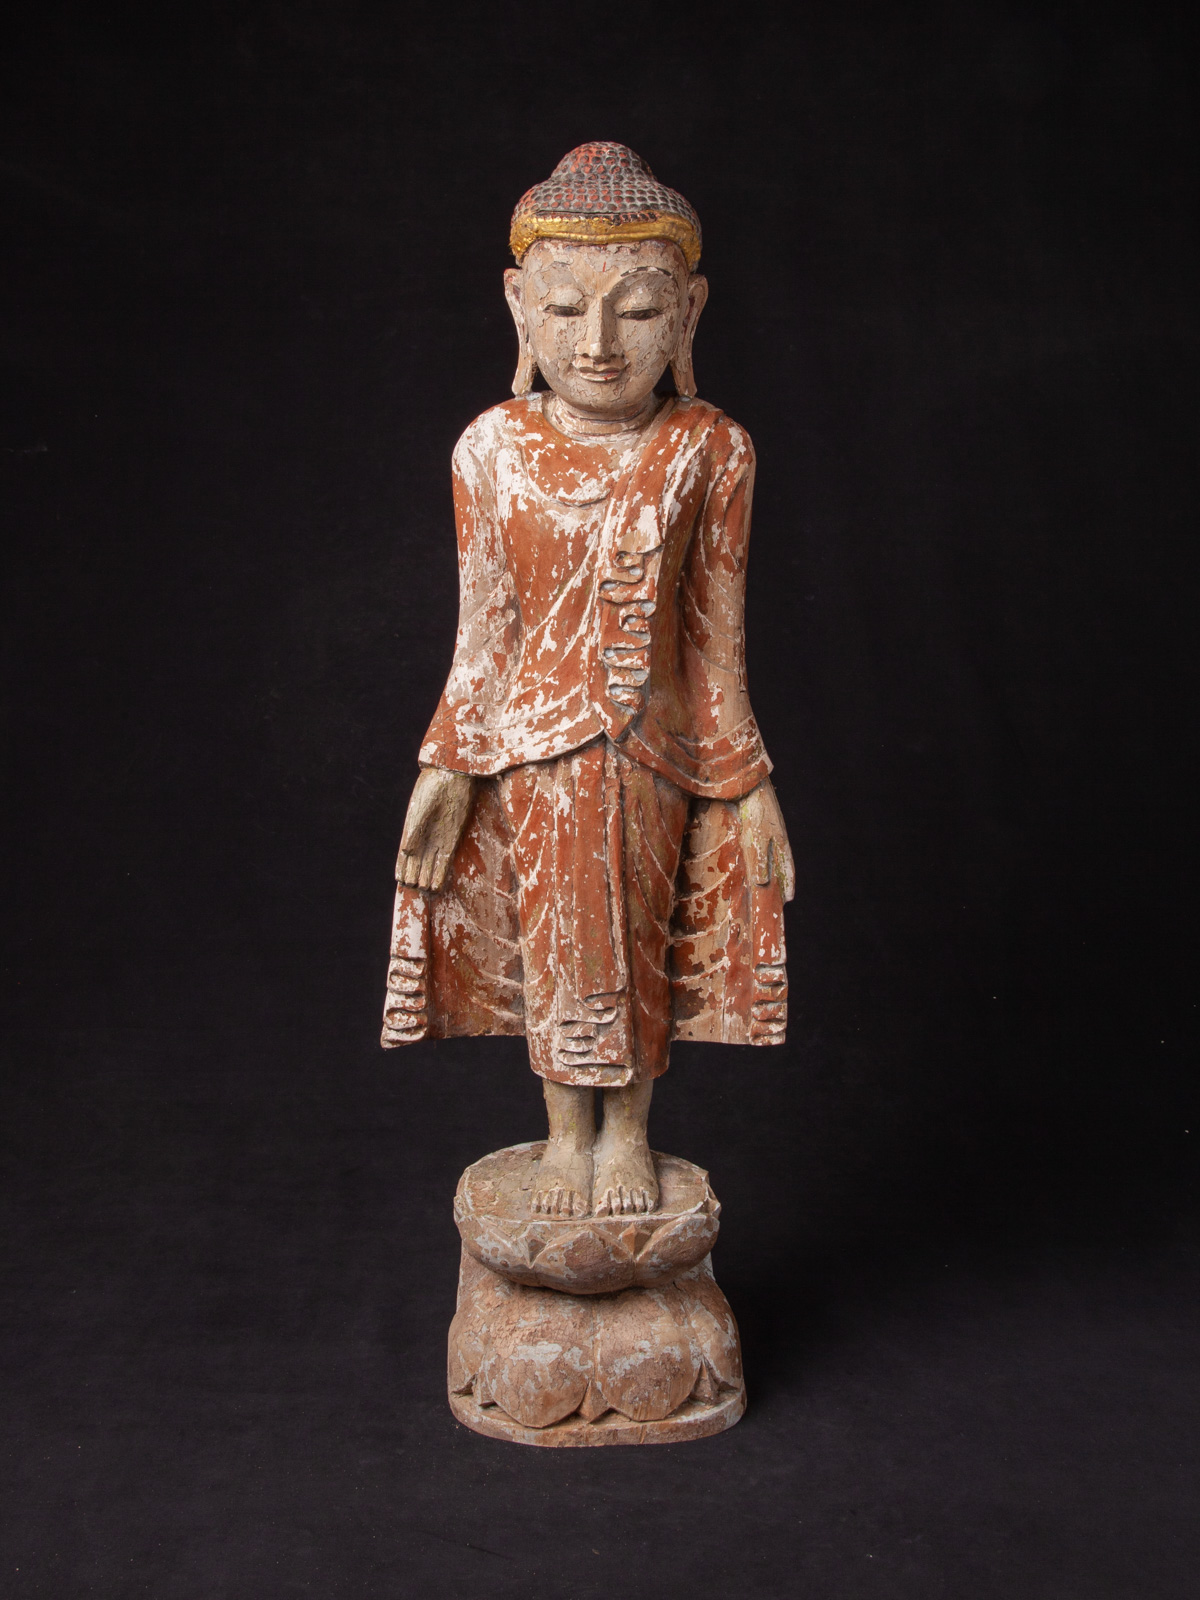 Old wooden Mandalay Buddha statue from Burma